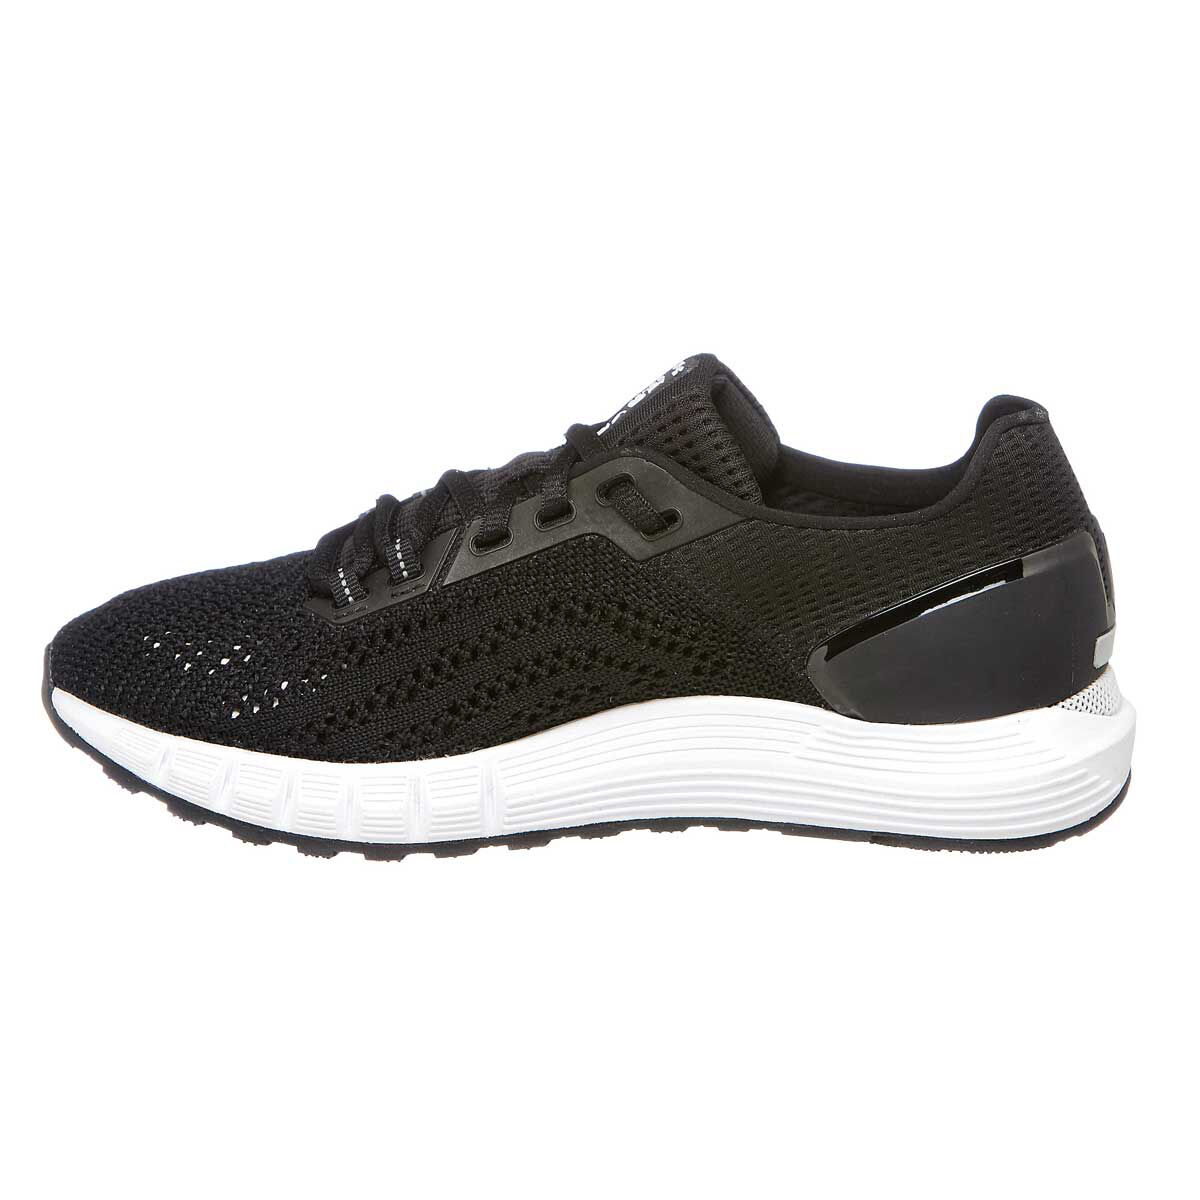 Under Armour HOVR Sonic 2 Womens Running Shoes